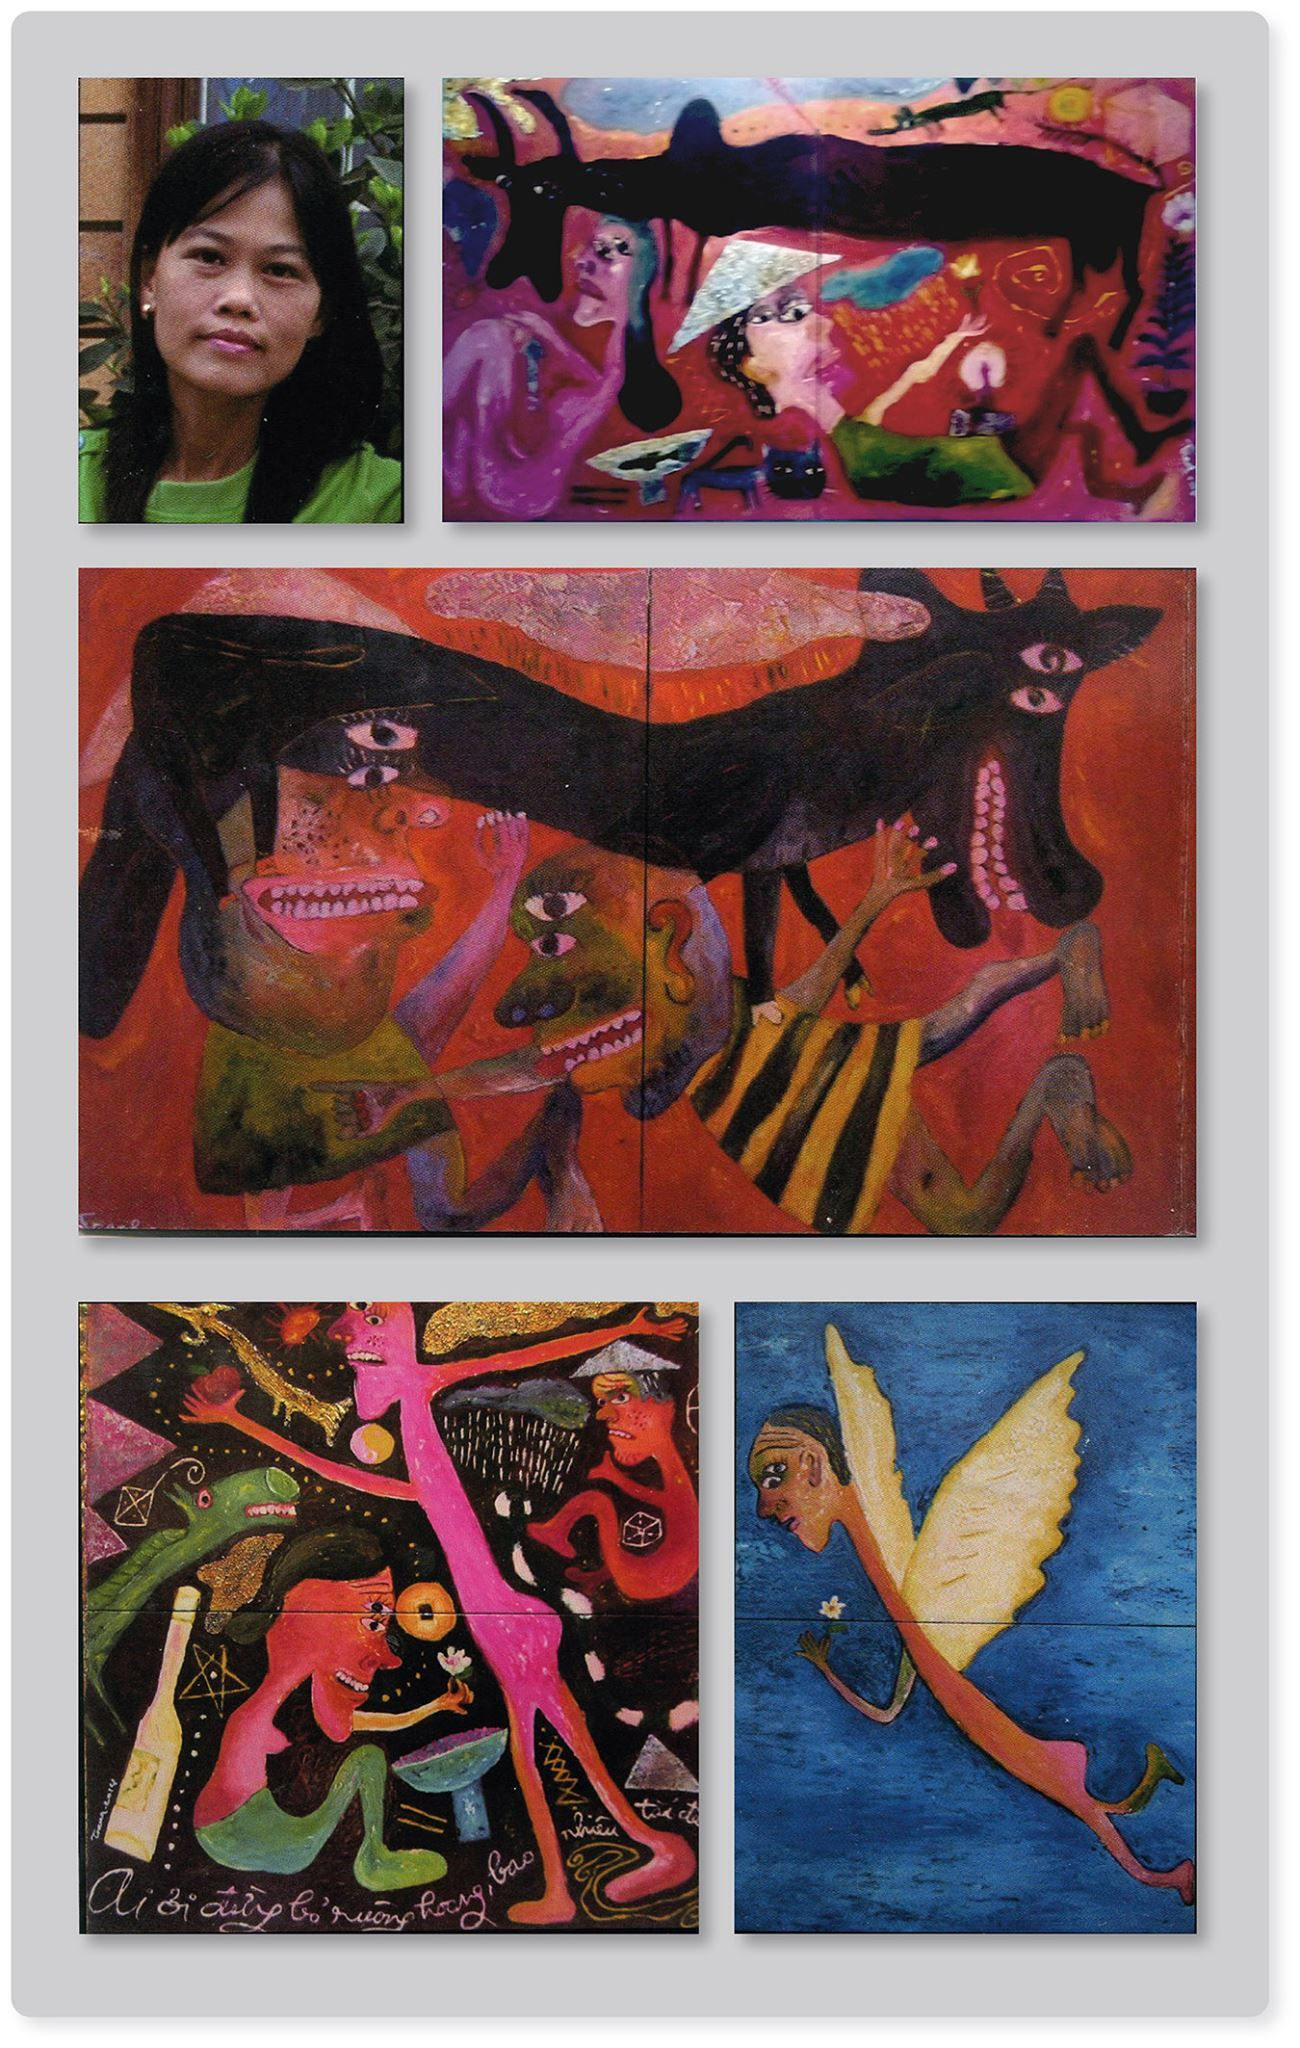 In A Gallery Near The Ancient Japanese Bridge In Hội An Vietnam I Came Across Paintings Which Impressed Me Very Much Artist Hoang Outsider Art Kunst Bilder